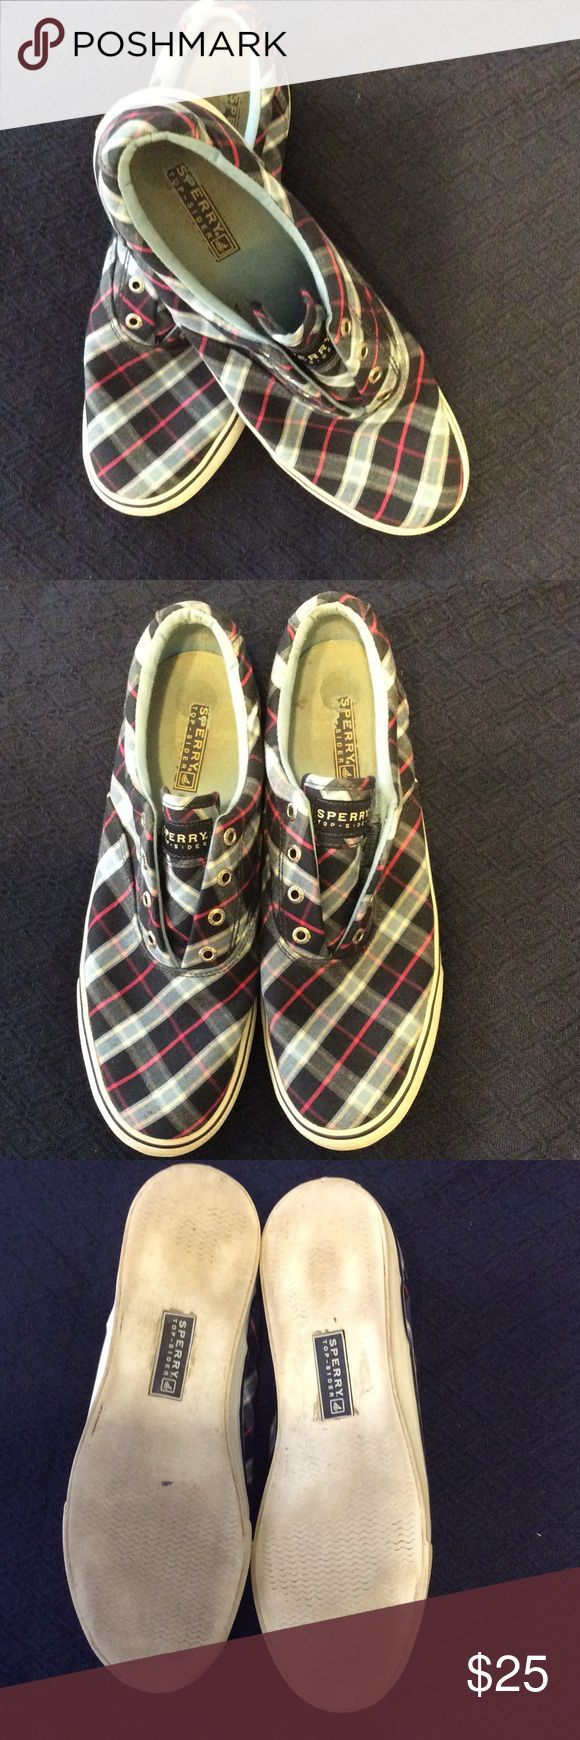 Spotted while shopping on Poshmark: Sperry top-siders plaid shoes size 9! #poshmark #fashion #shopping #style #Sperry Top-Sider #Shoes